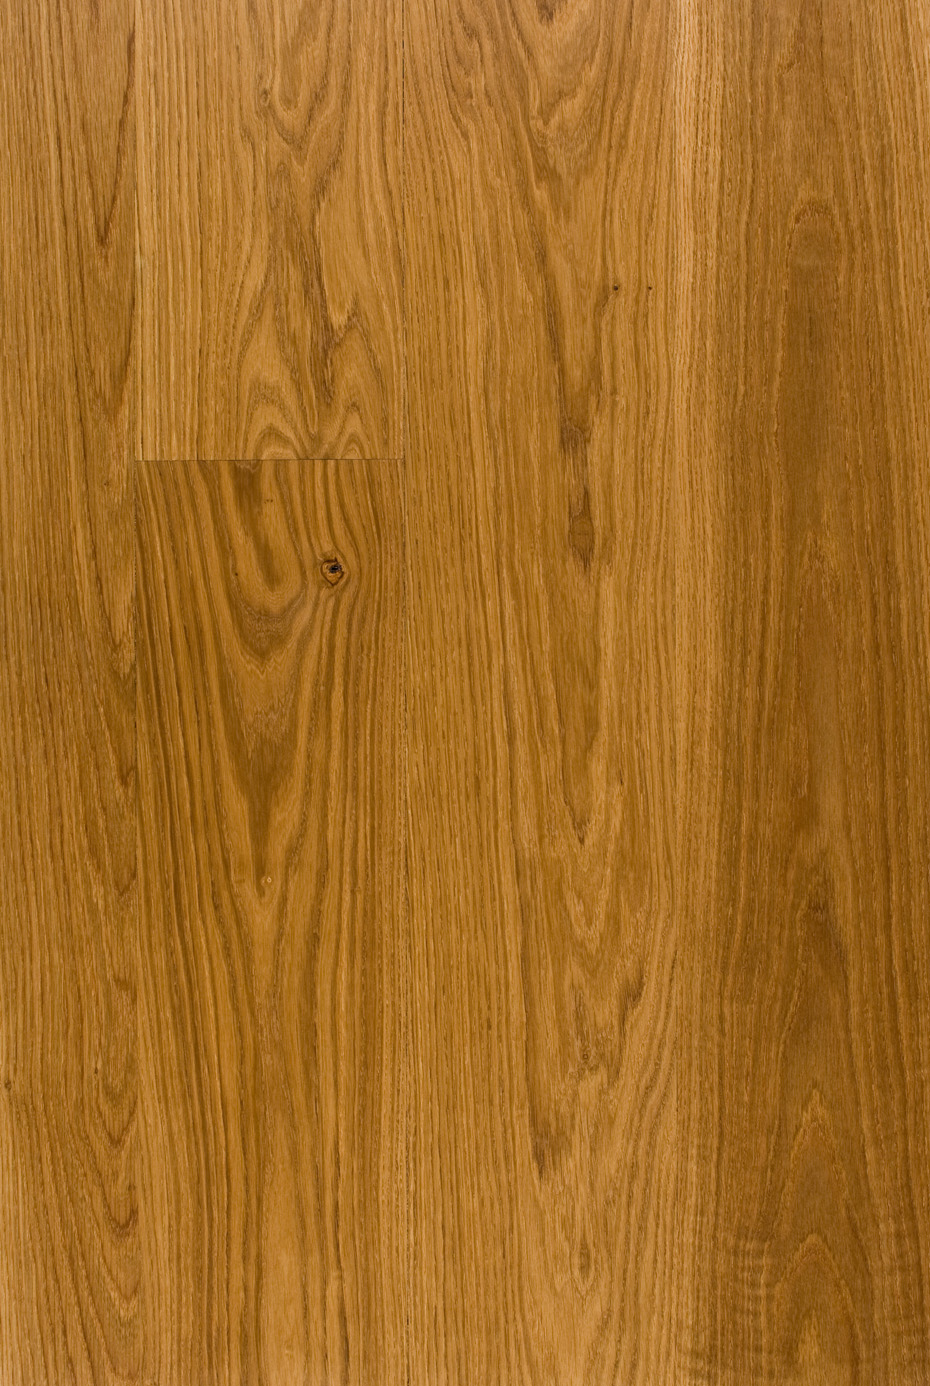 Harvest white oak flooring mountain lumber for Oak wood flooring